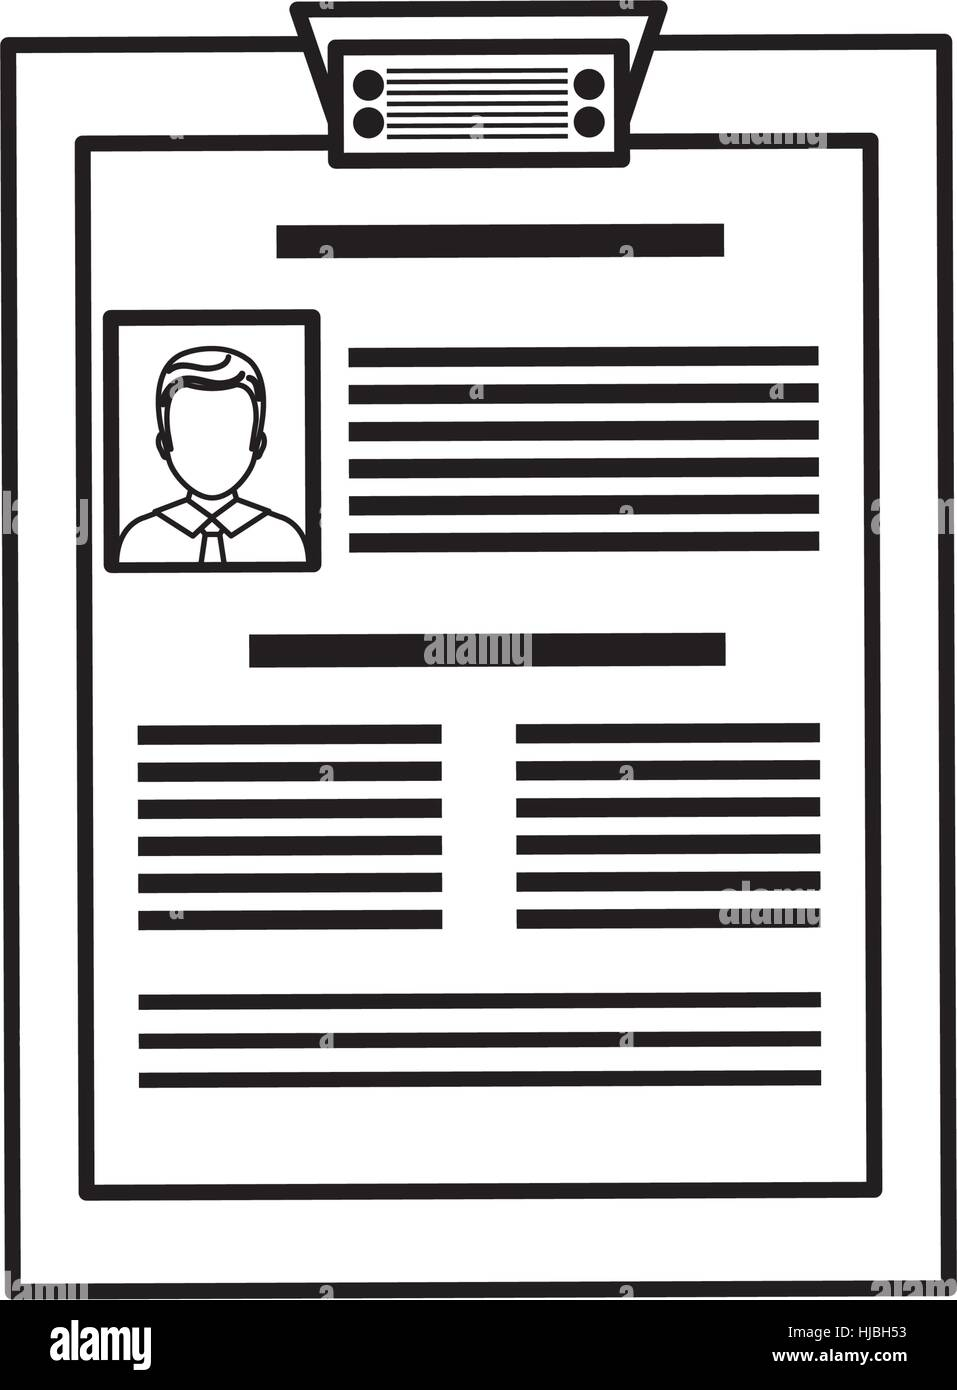 resume black white icon cv stock photos  u0026 resume black white icon cv stock images